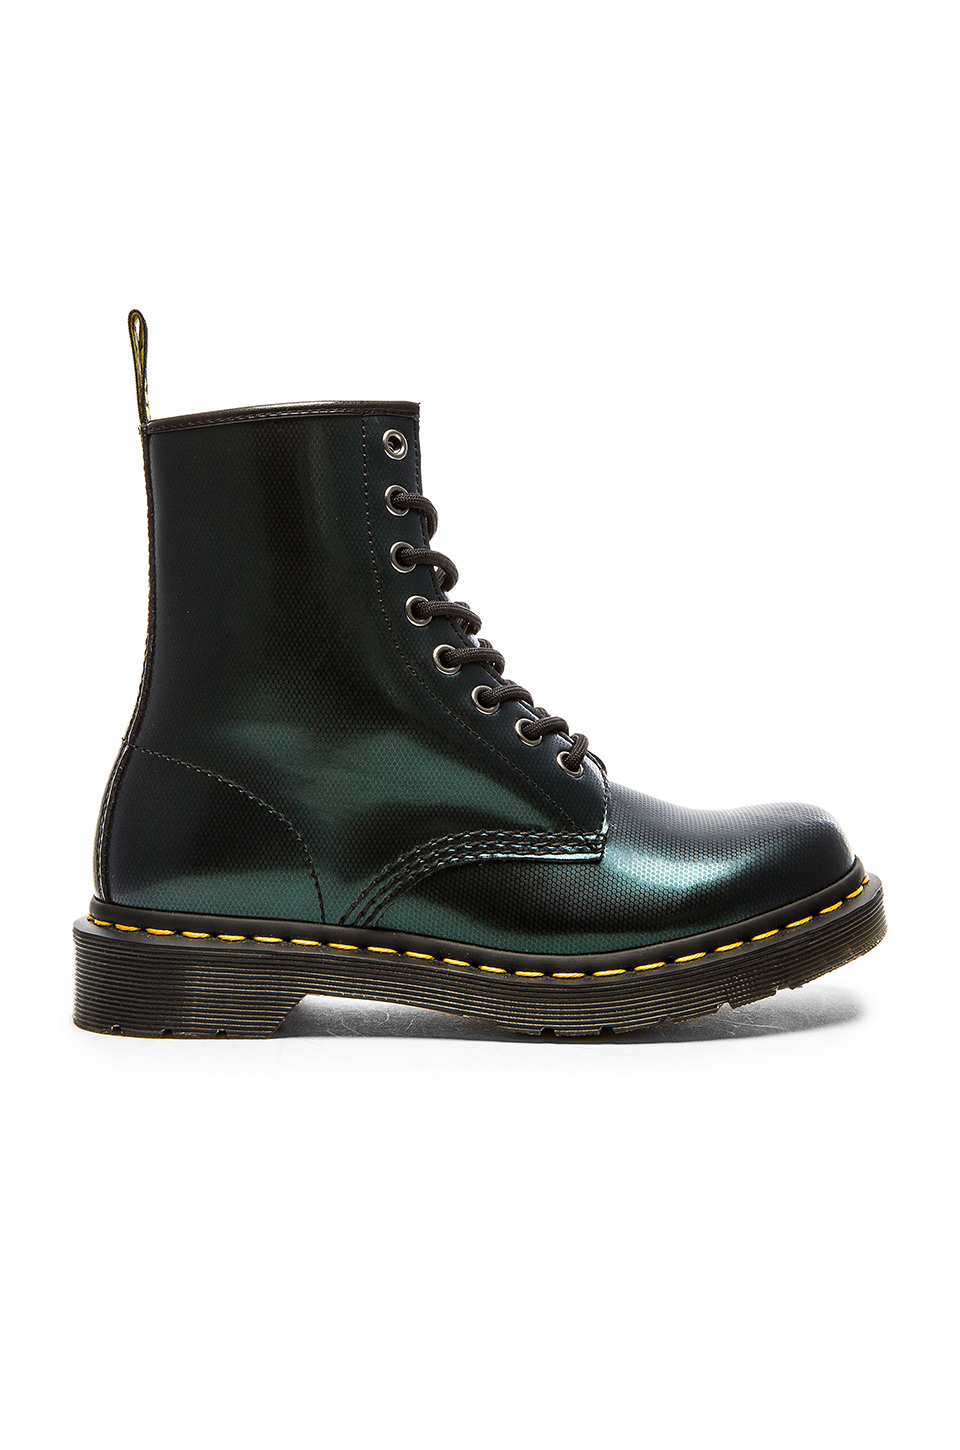 Dr. Martens 8-Eye Leather Ankle Boots in Green - Lyst